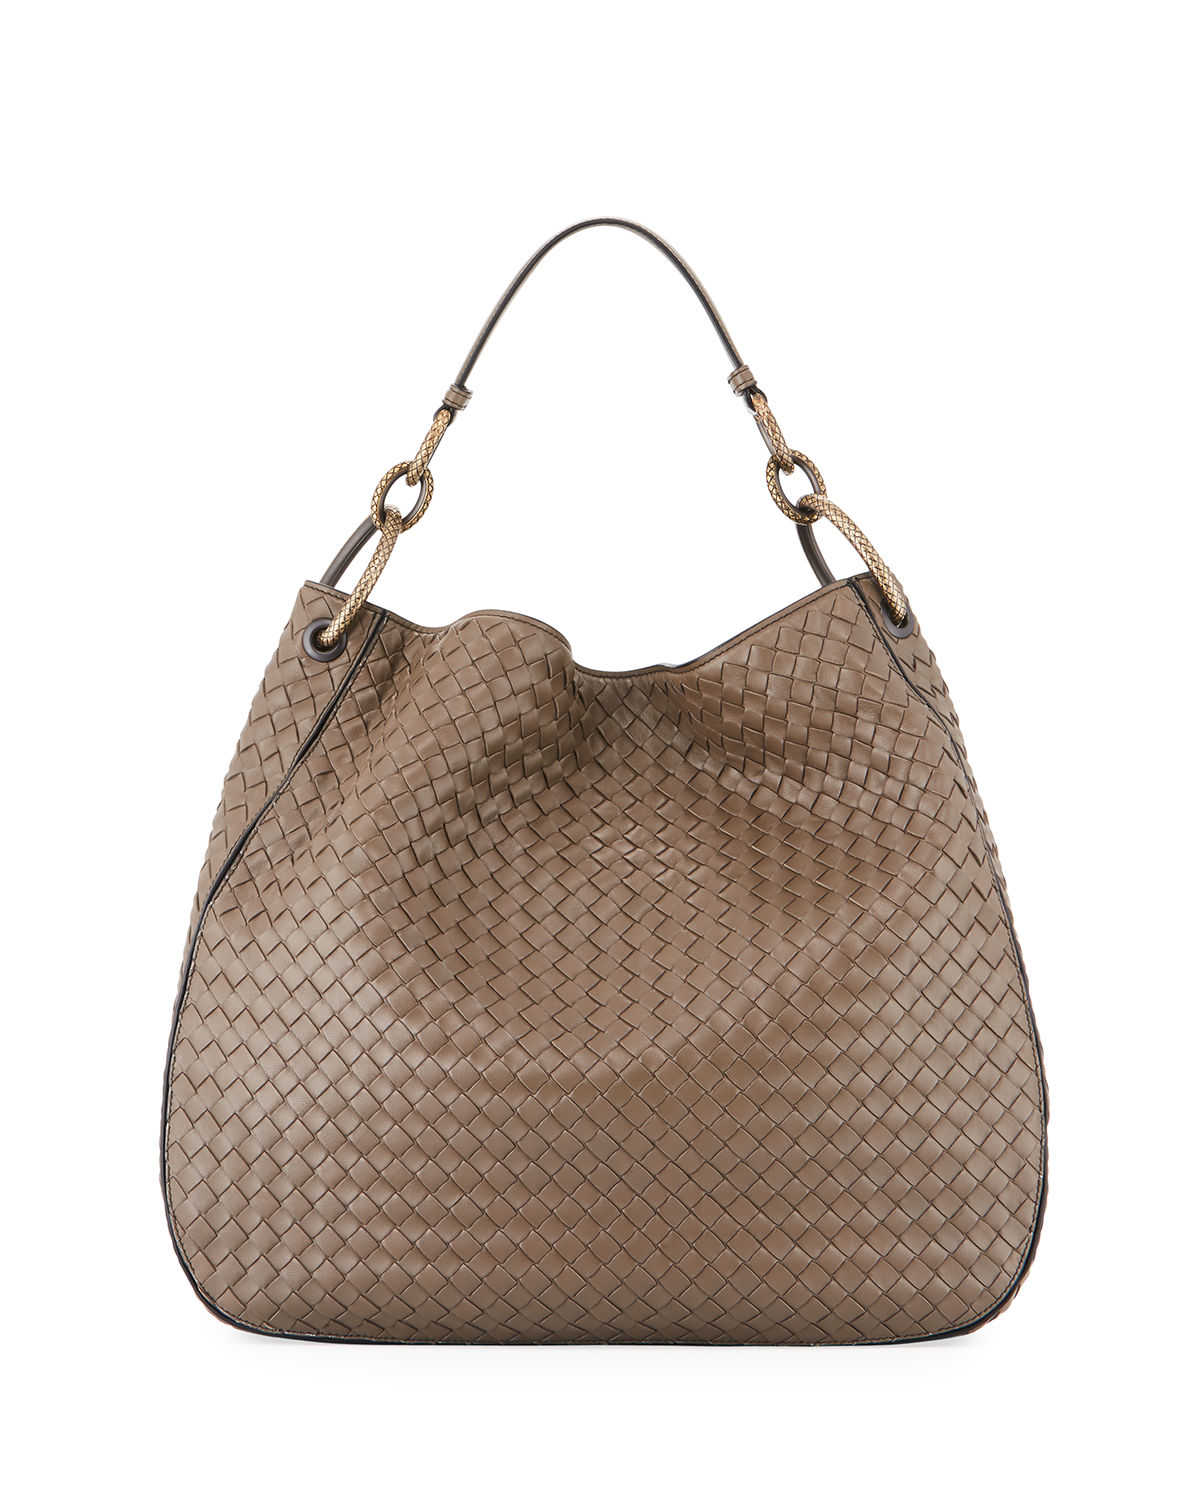 b7775727b3 Bottega Veneta Intrecciato Leather Shoulder Bag